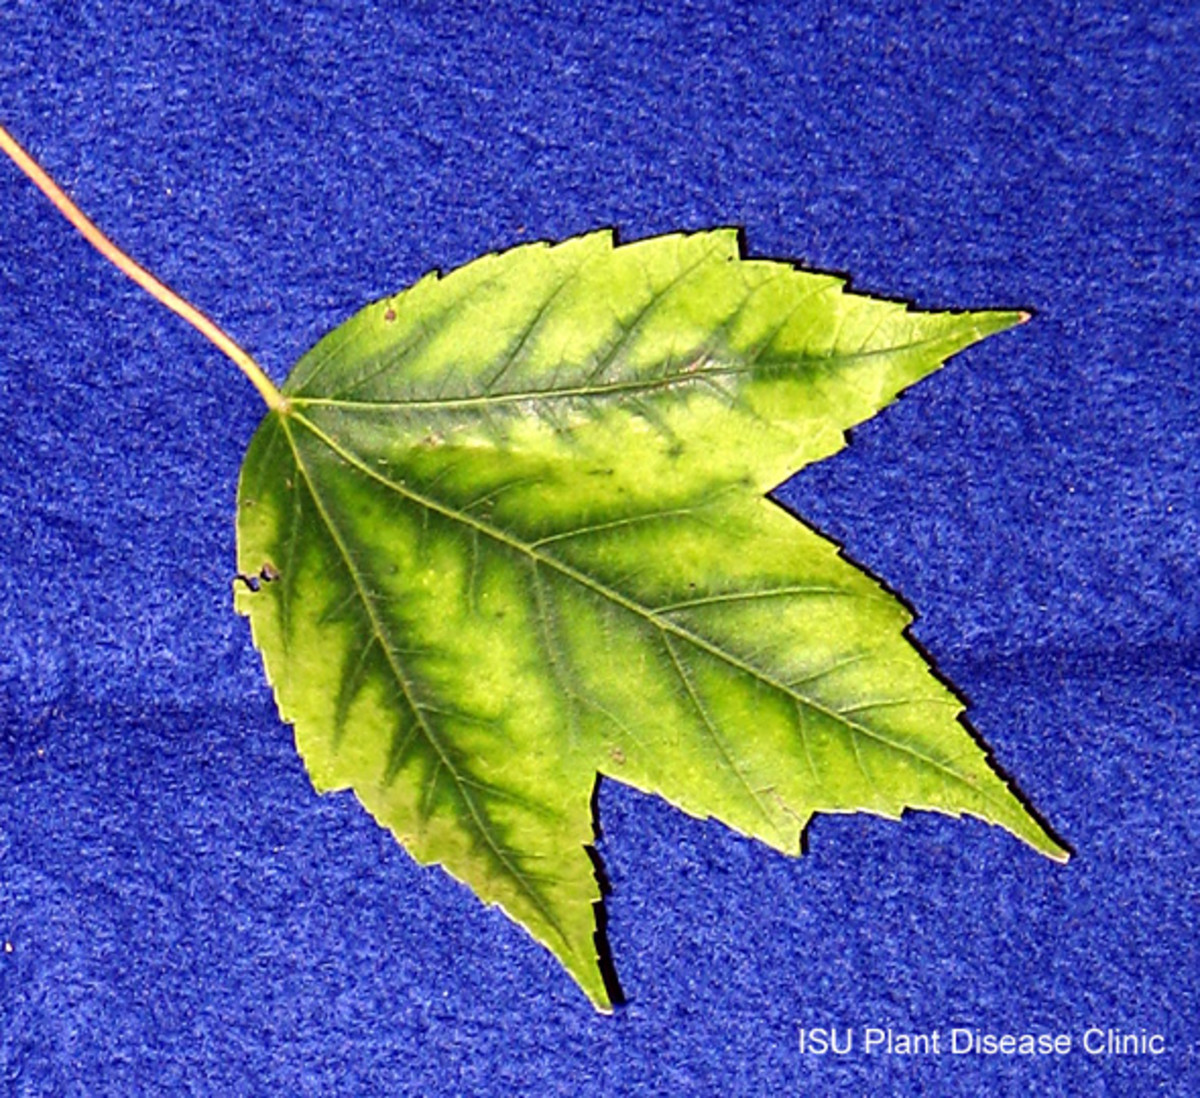 Symptoms of Iron chlorosis